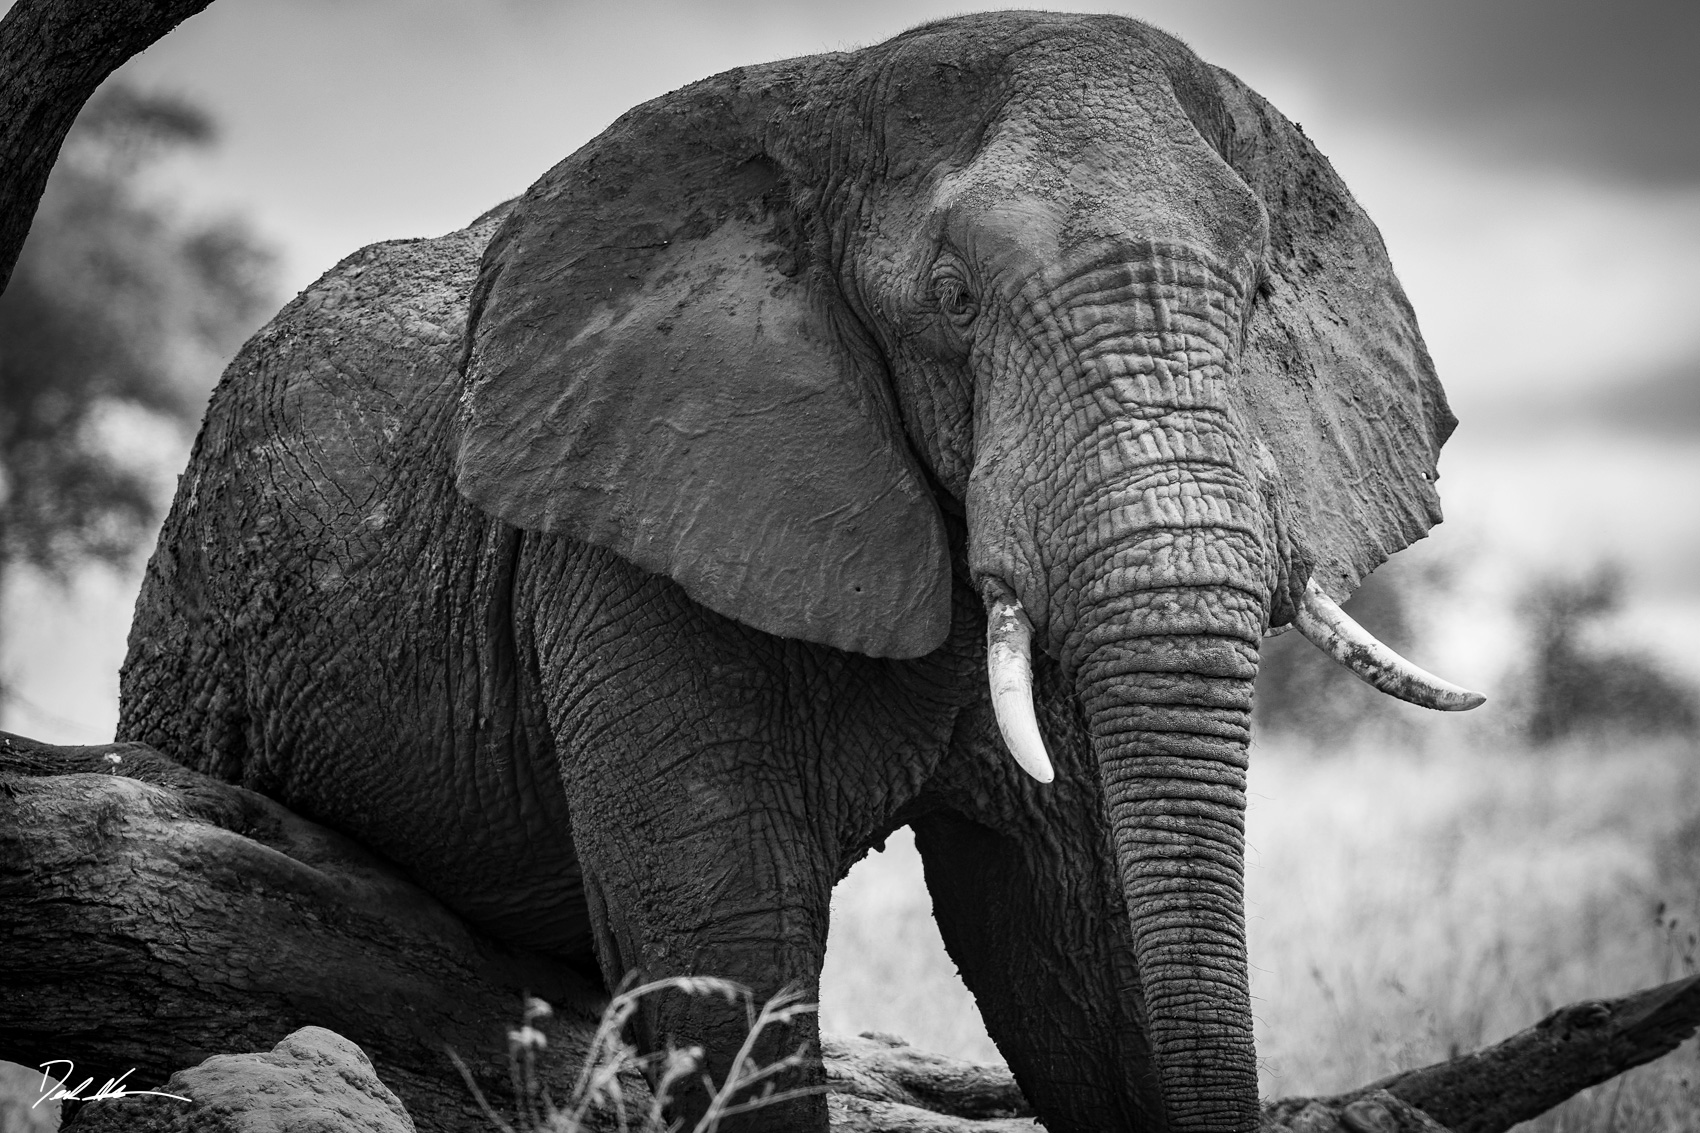 Black and white photo of large bull elephant in Tanzania climbing over a fallen branch